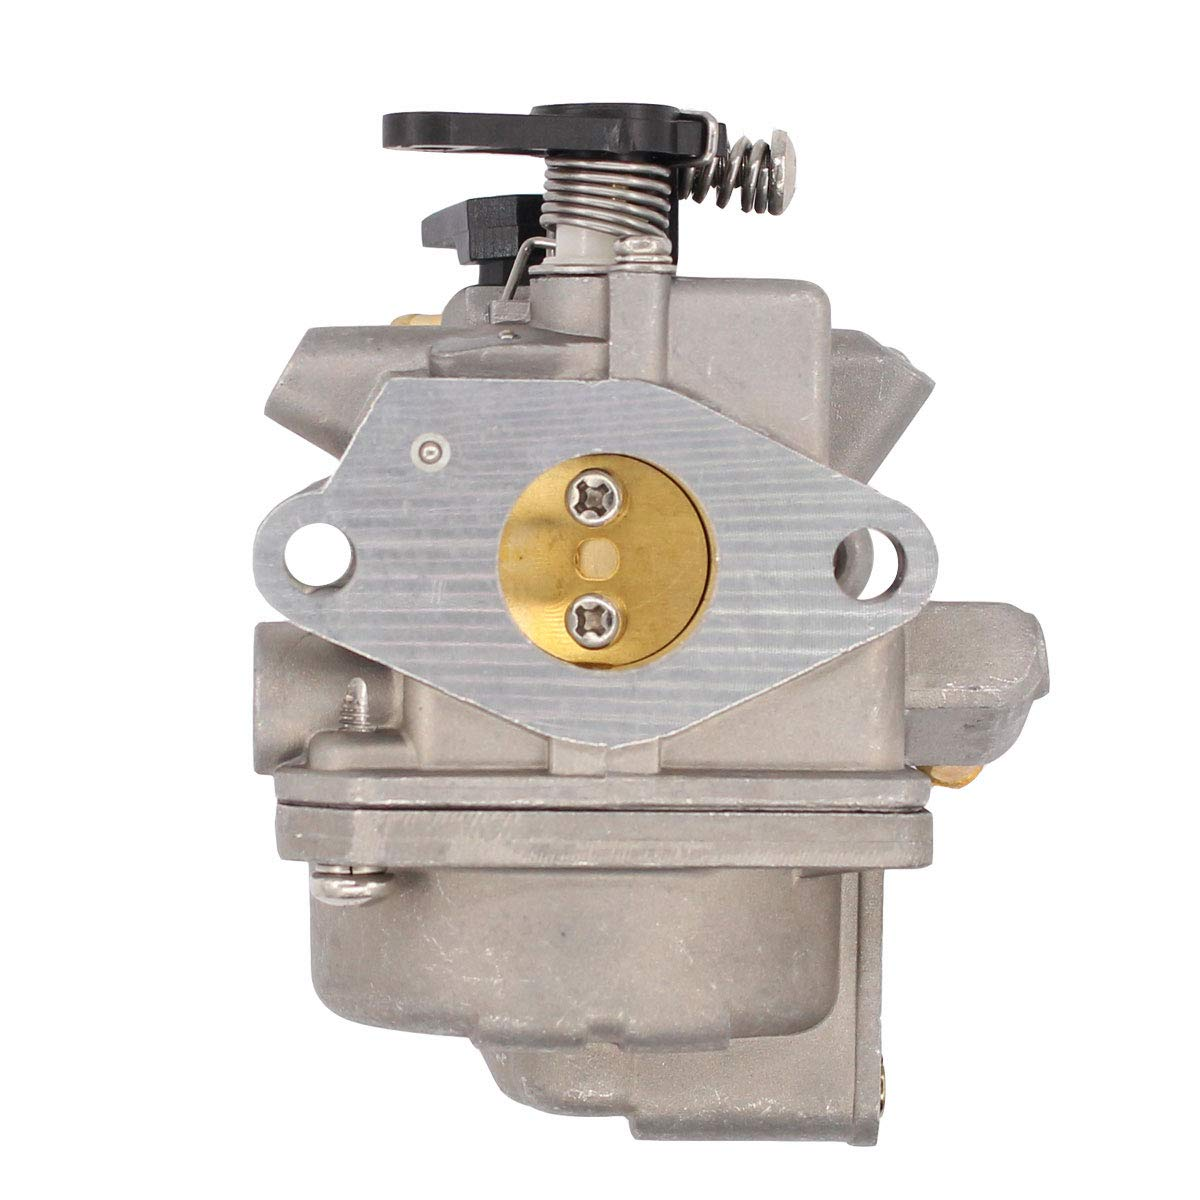 ApplianPar Carb Carburetor 3R1-03200 for Nissan Tohatsu Mercury MF3.5 MFS4 MFS5 NFS4 4 Stroke 3.5 4 5HP 6HP by ApplianPar